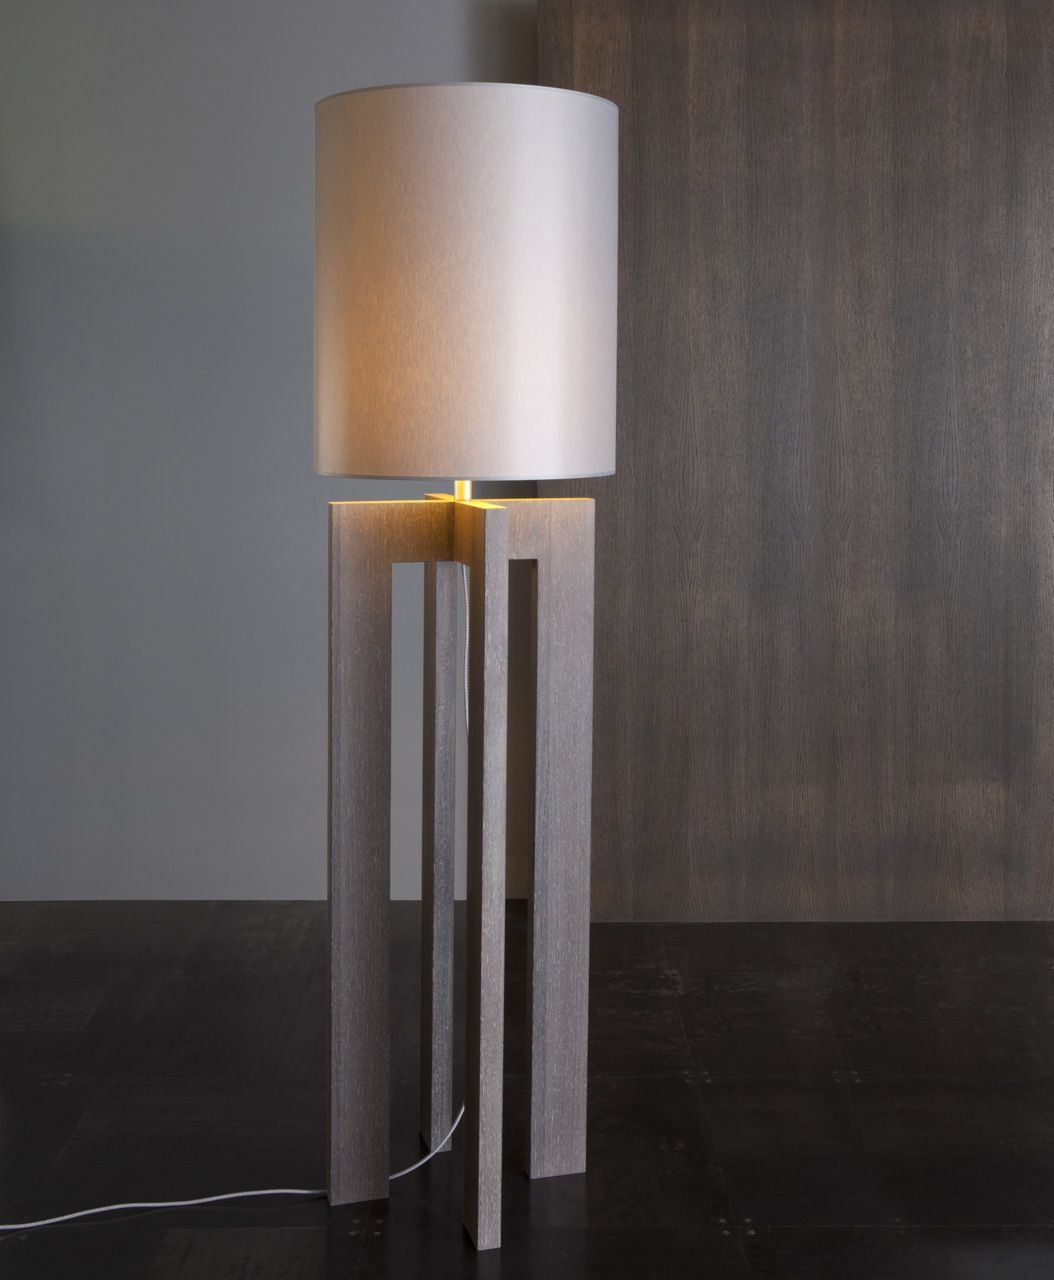 Floor lamp tibau design remy meijers for remy meijers collection